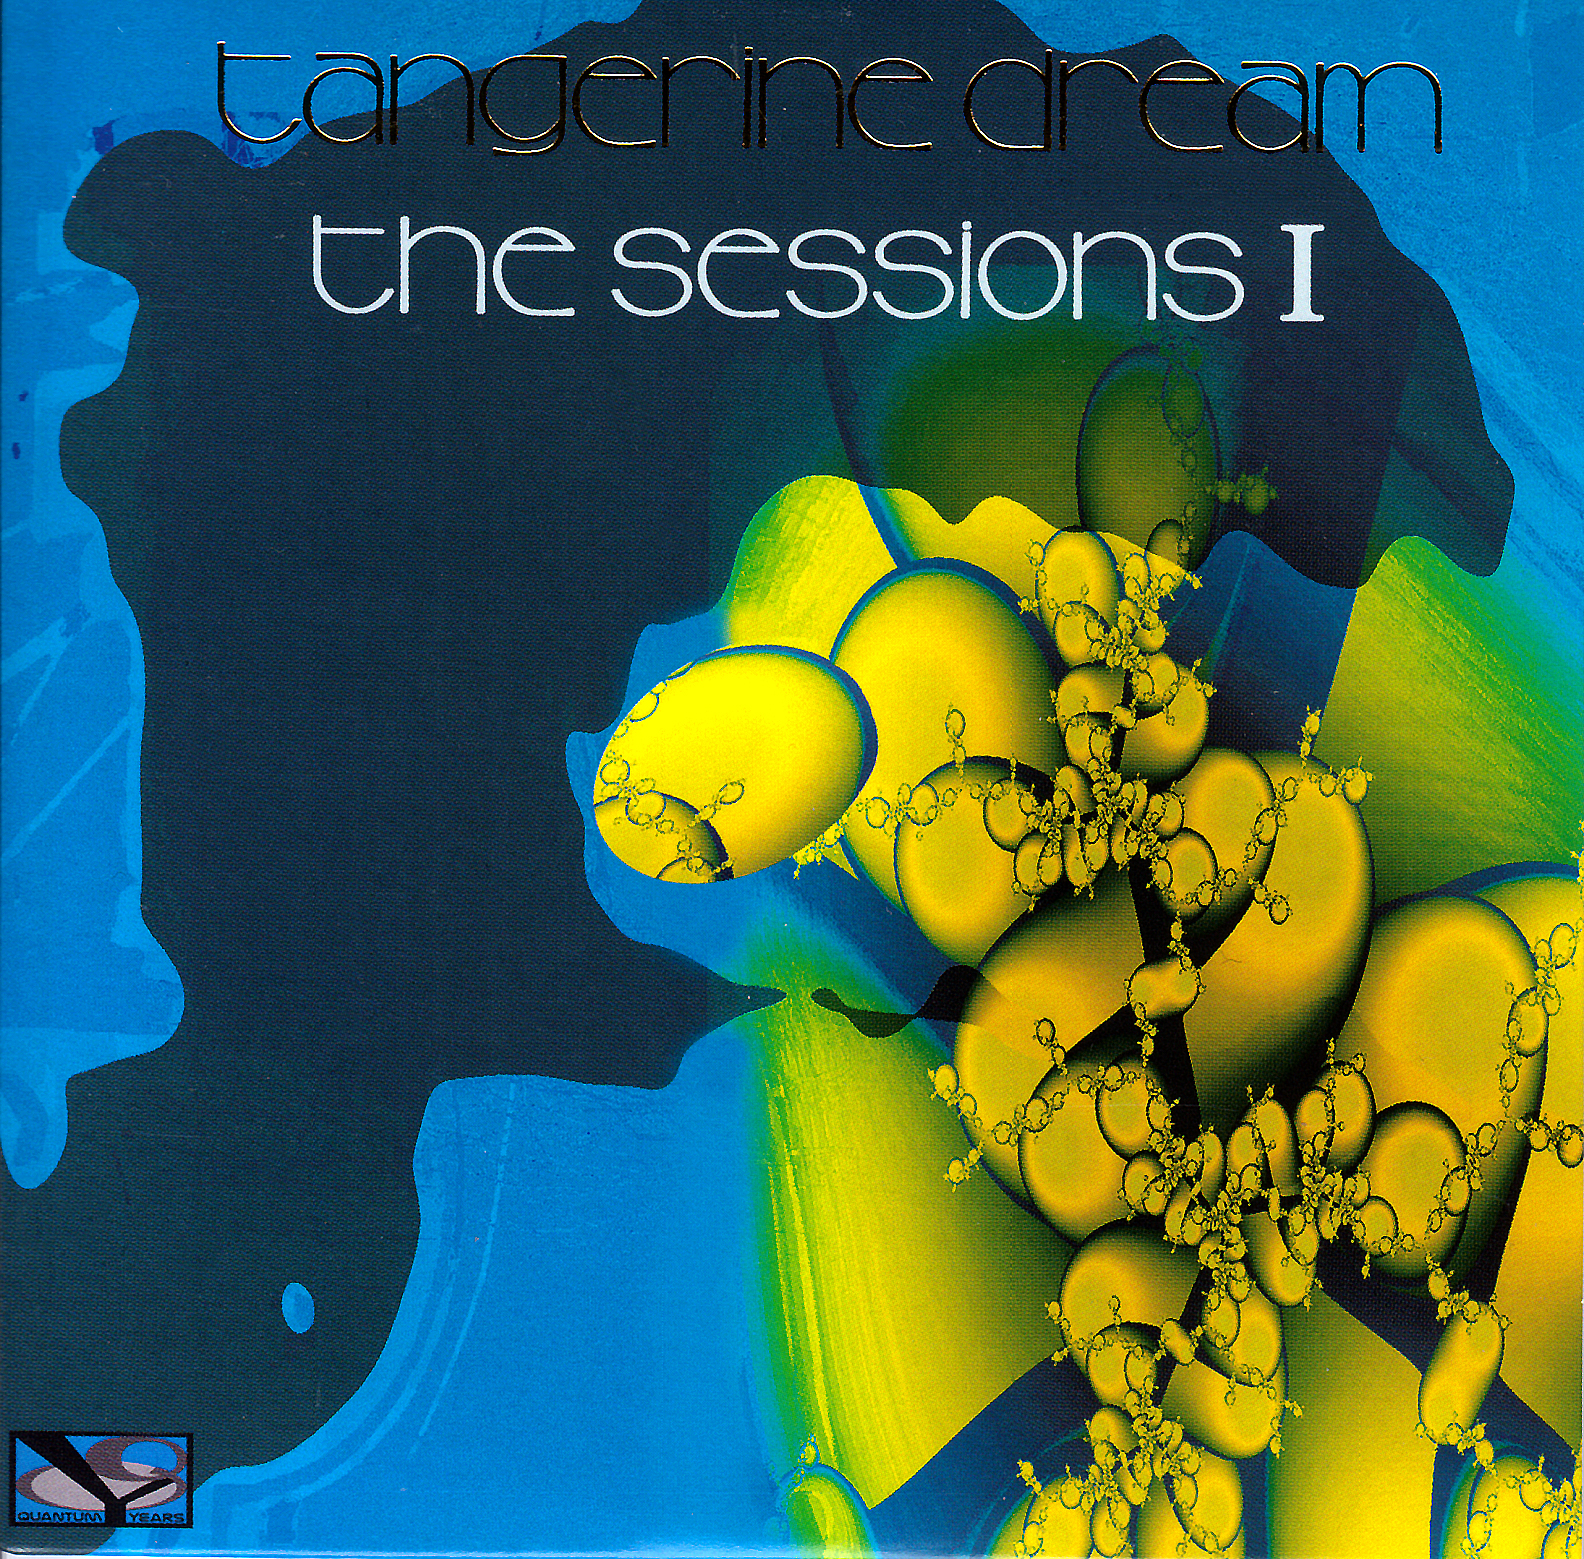 Notes from a Nebula: Tangerine Dream - The Sessions I